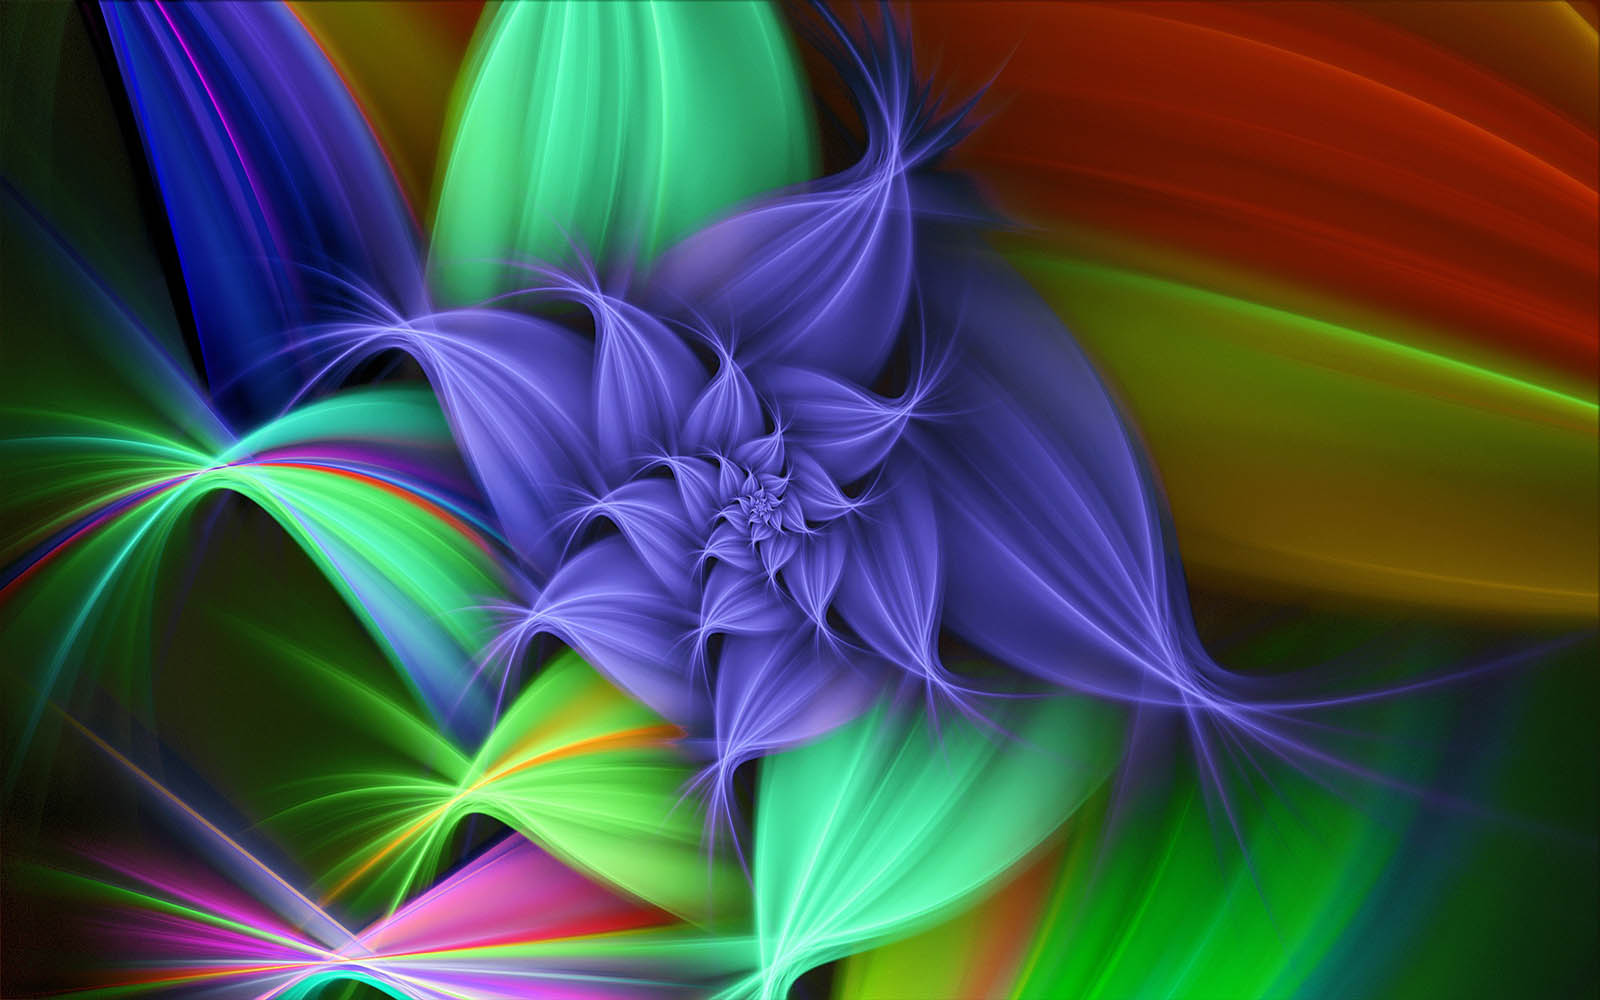 Wallpapers: Graphic Abstract Wallpapers